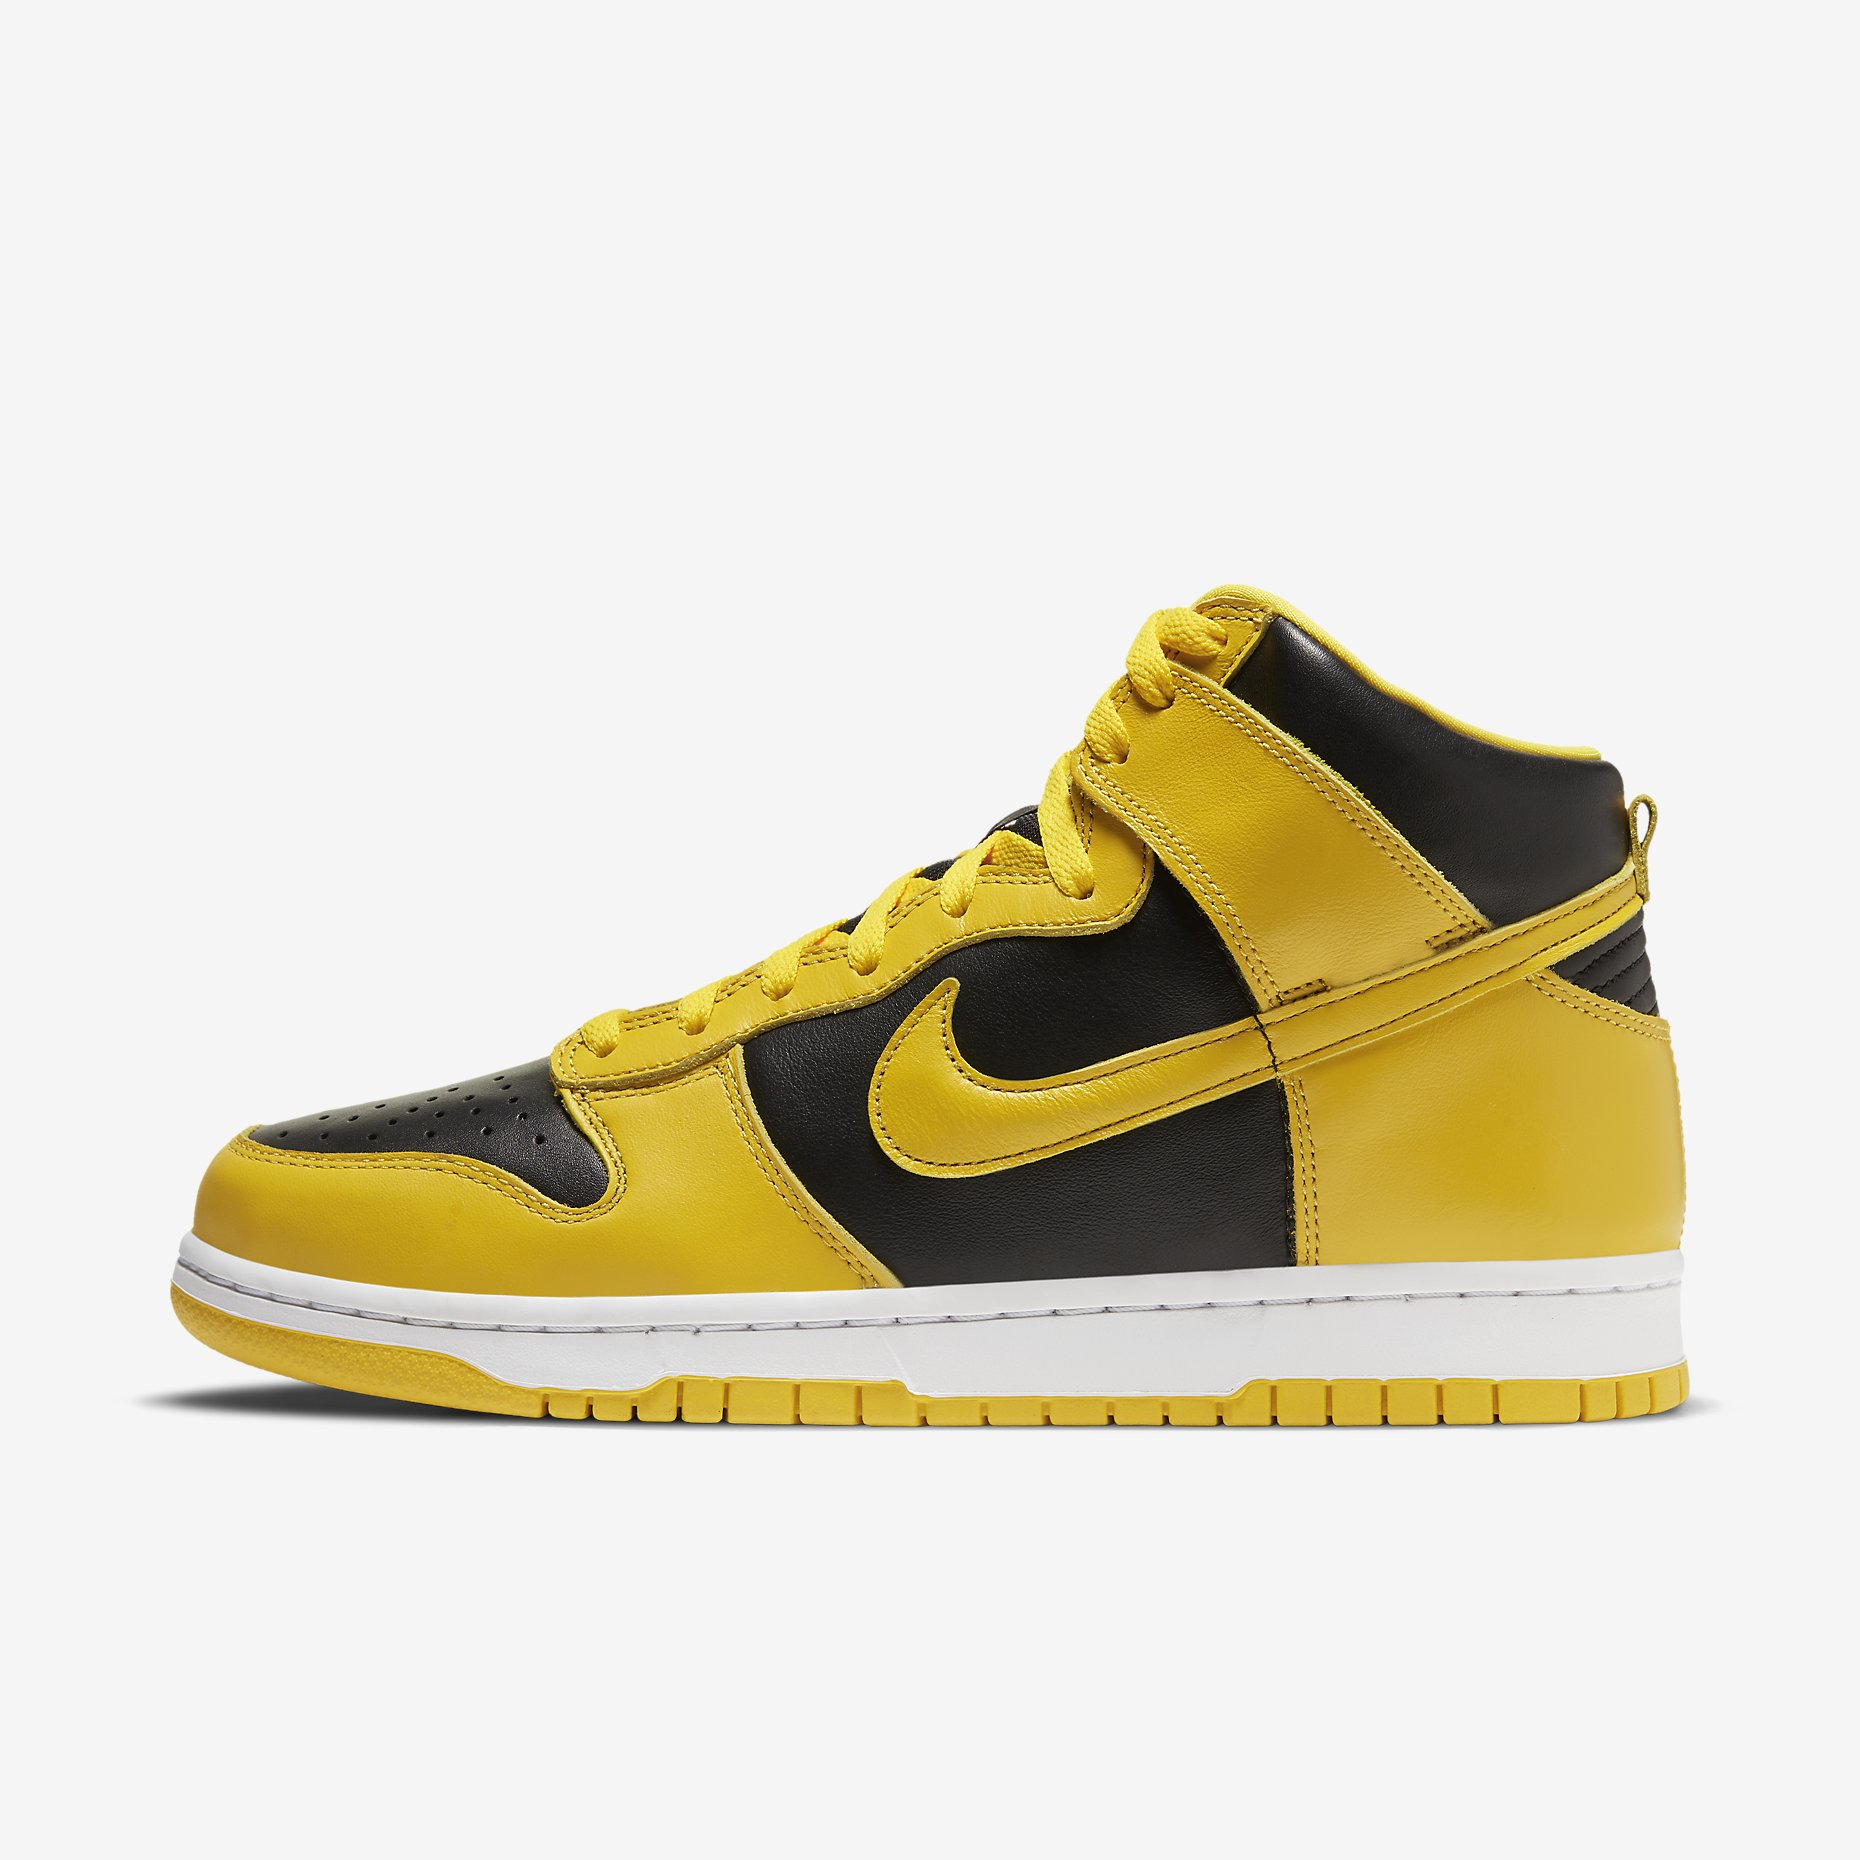 Nike Dunk High 'Varsity Maize'}